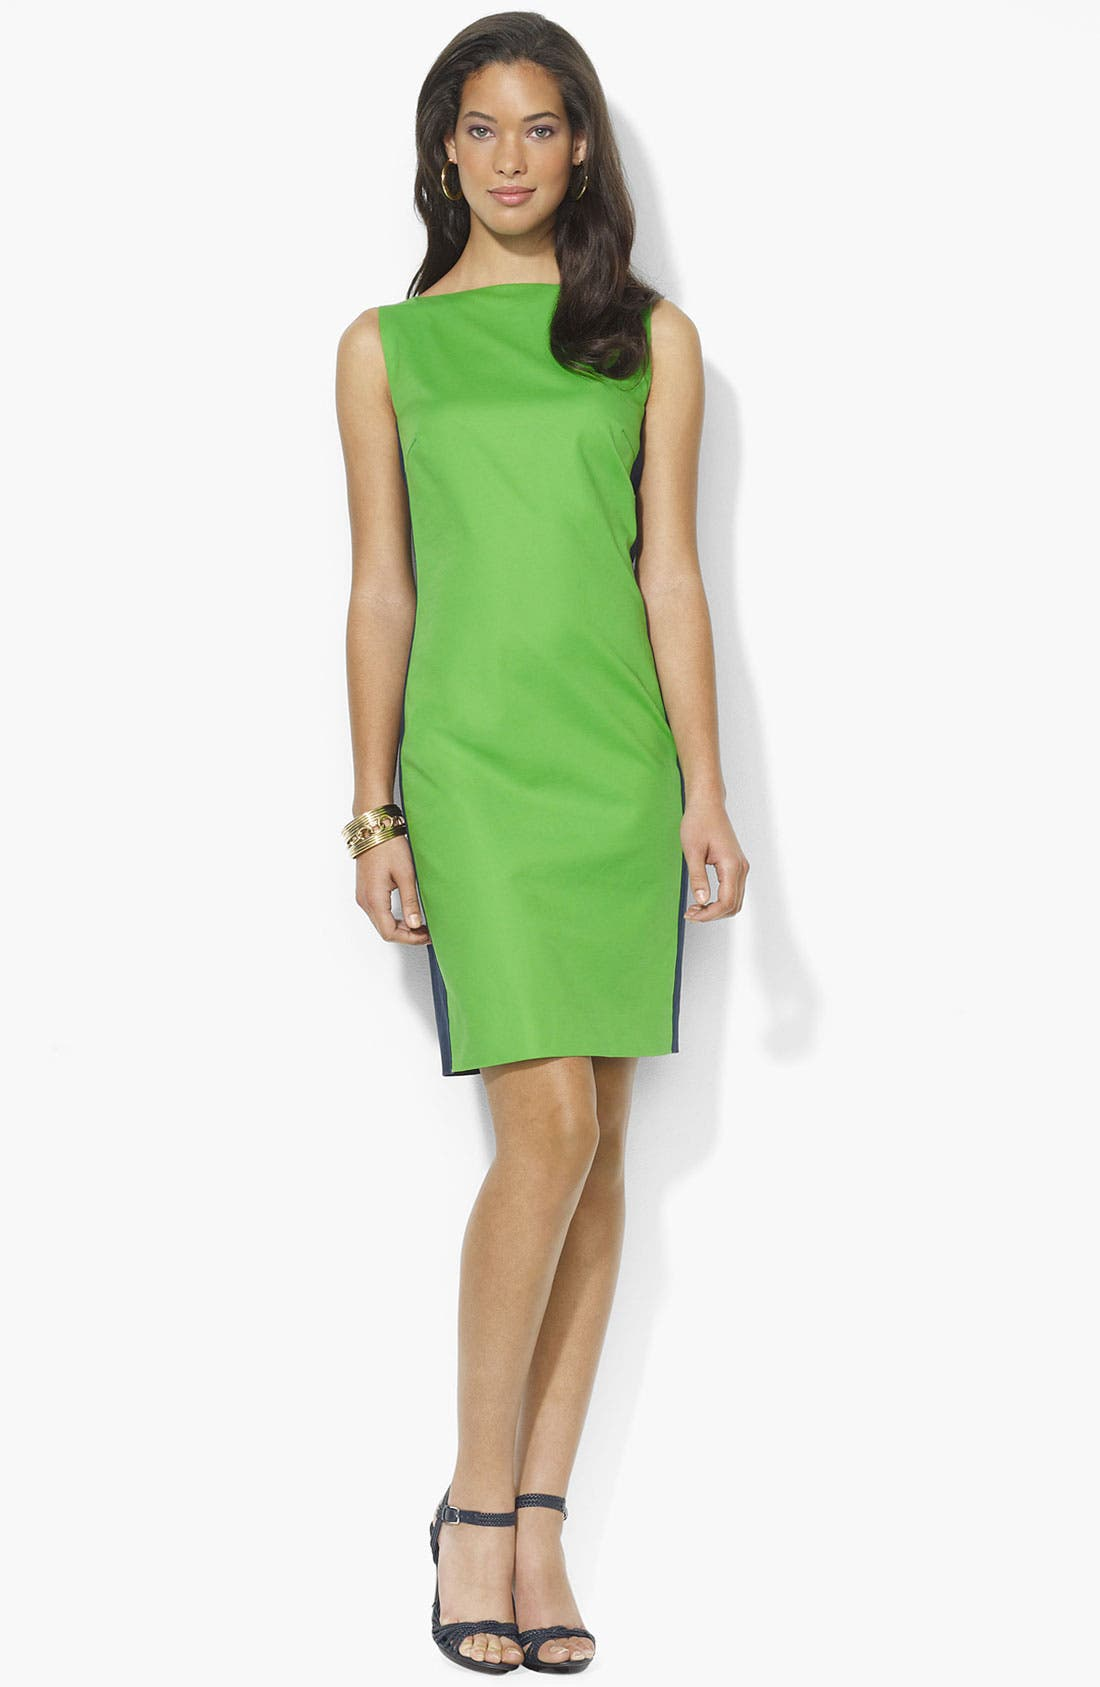 Alternate Image 1 Selected - Lauren Ralph Lauren Colorblock Shift Dress (Petite) (Online Only)